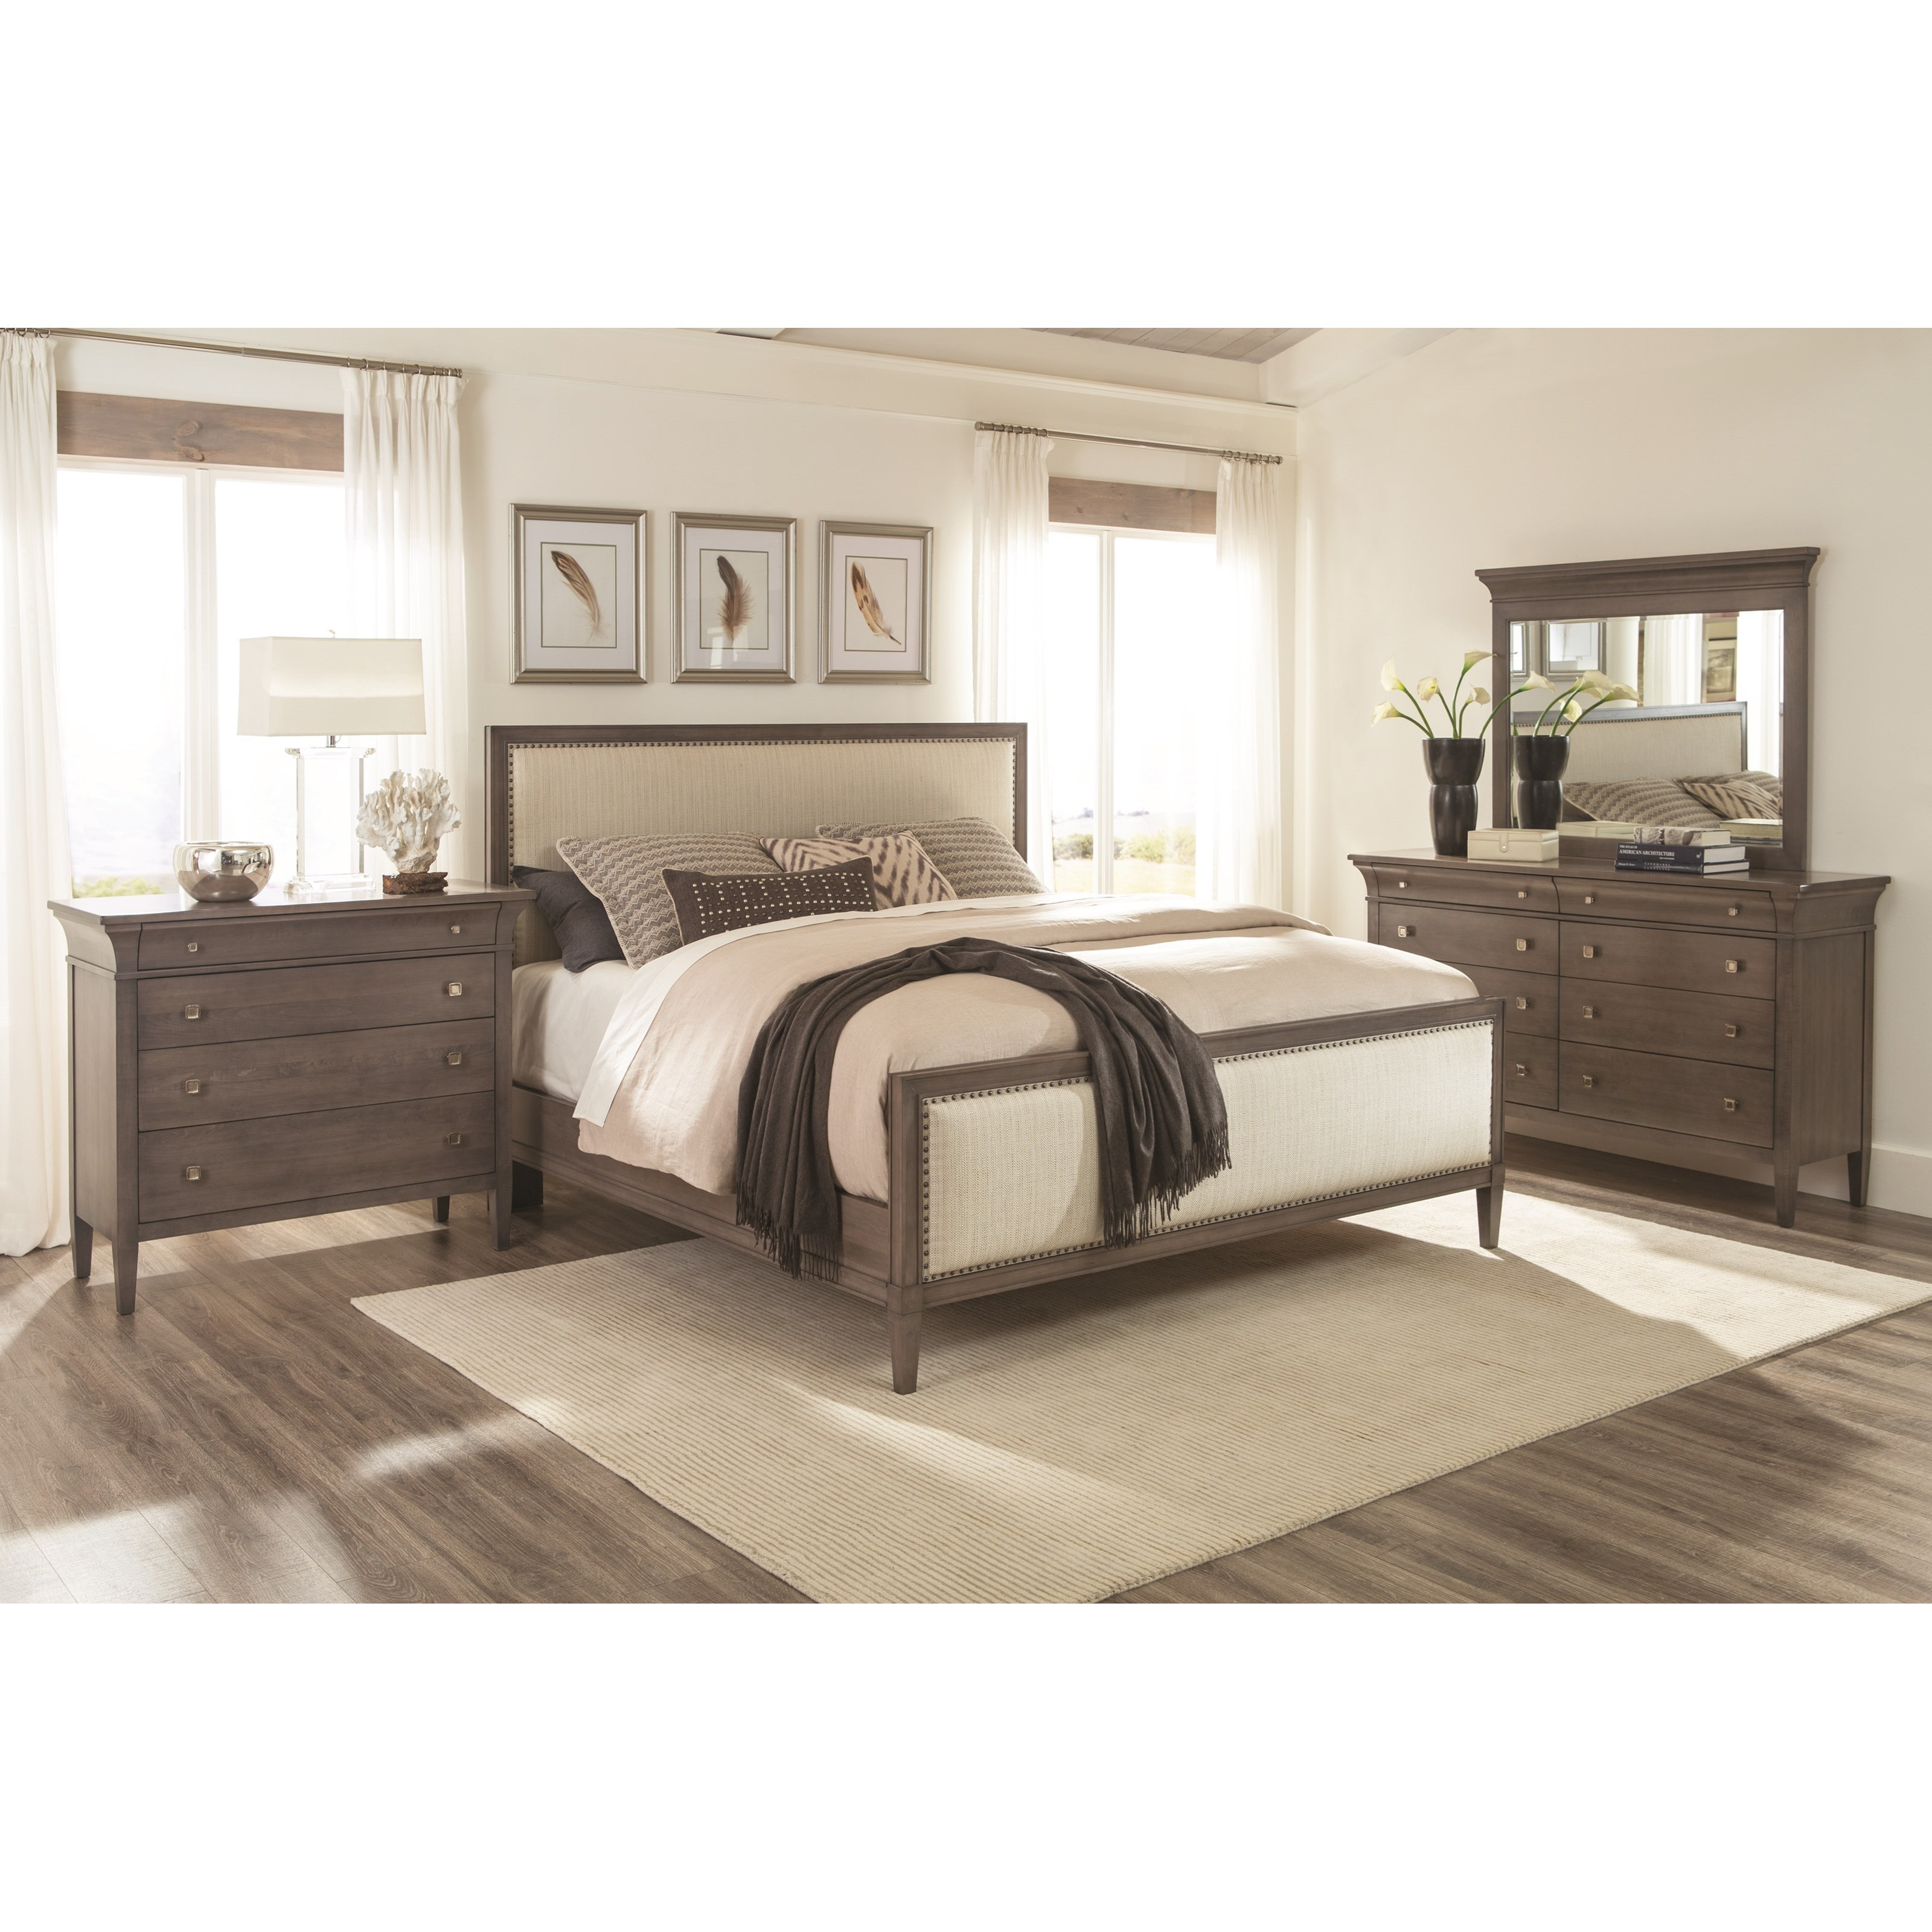 Prominence King Bedroom Group by Durham at Stoney Creek Furniture